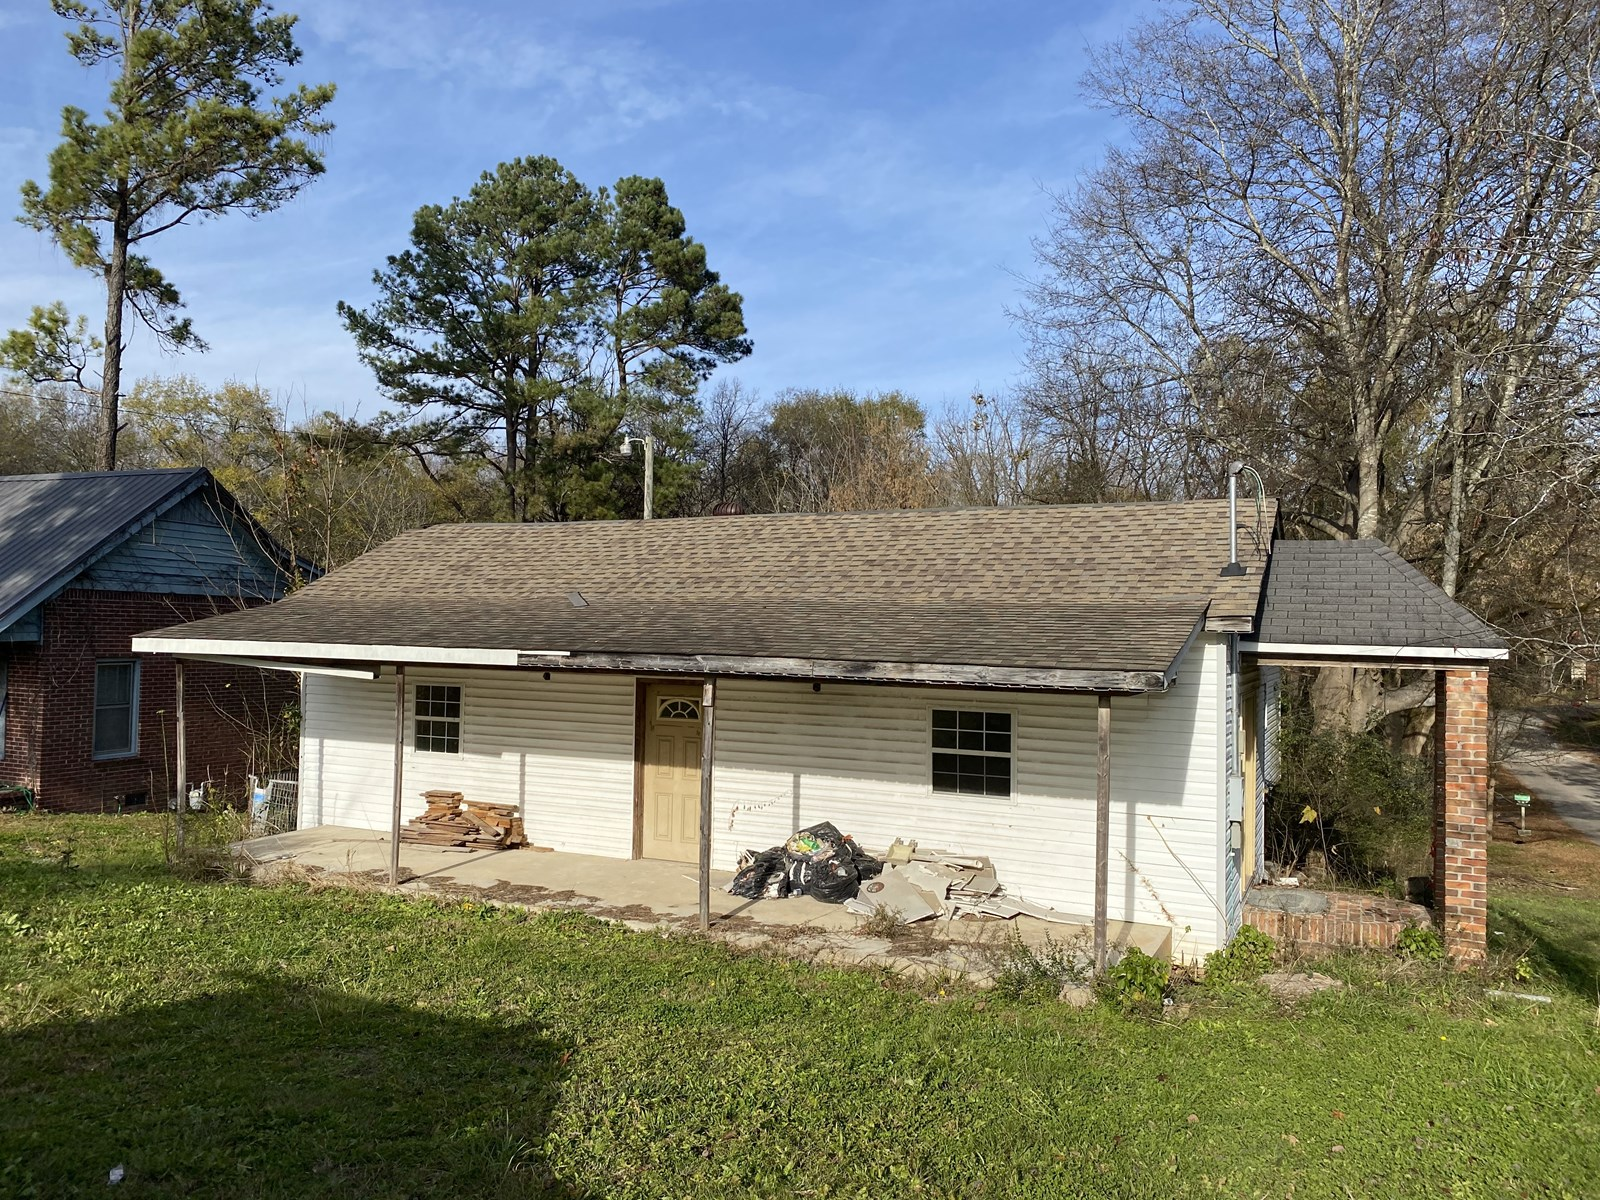 OLD HOME FOR SALE IN TN, WATER, ELECTRICITY, CITY SEWER